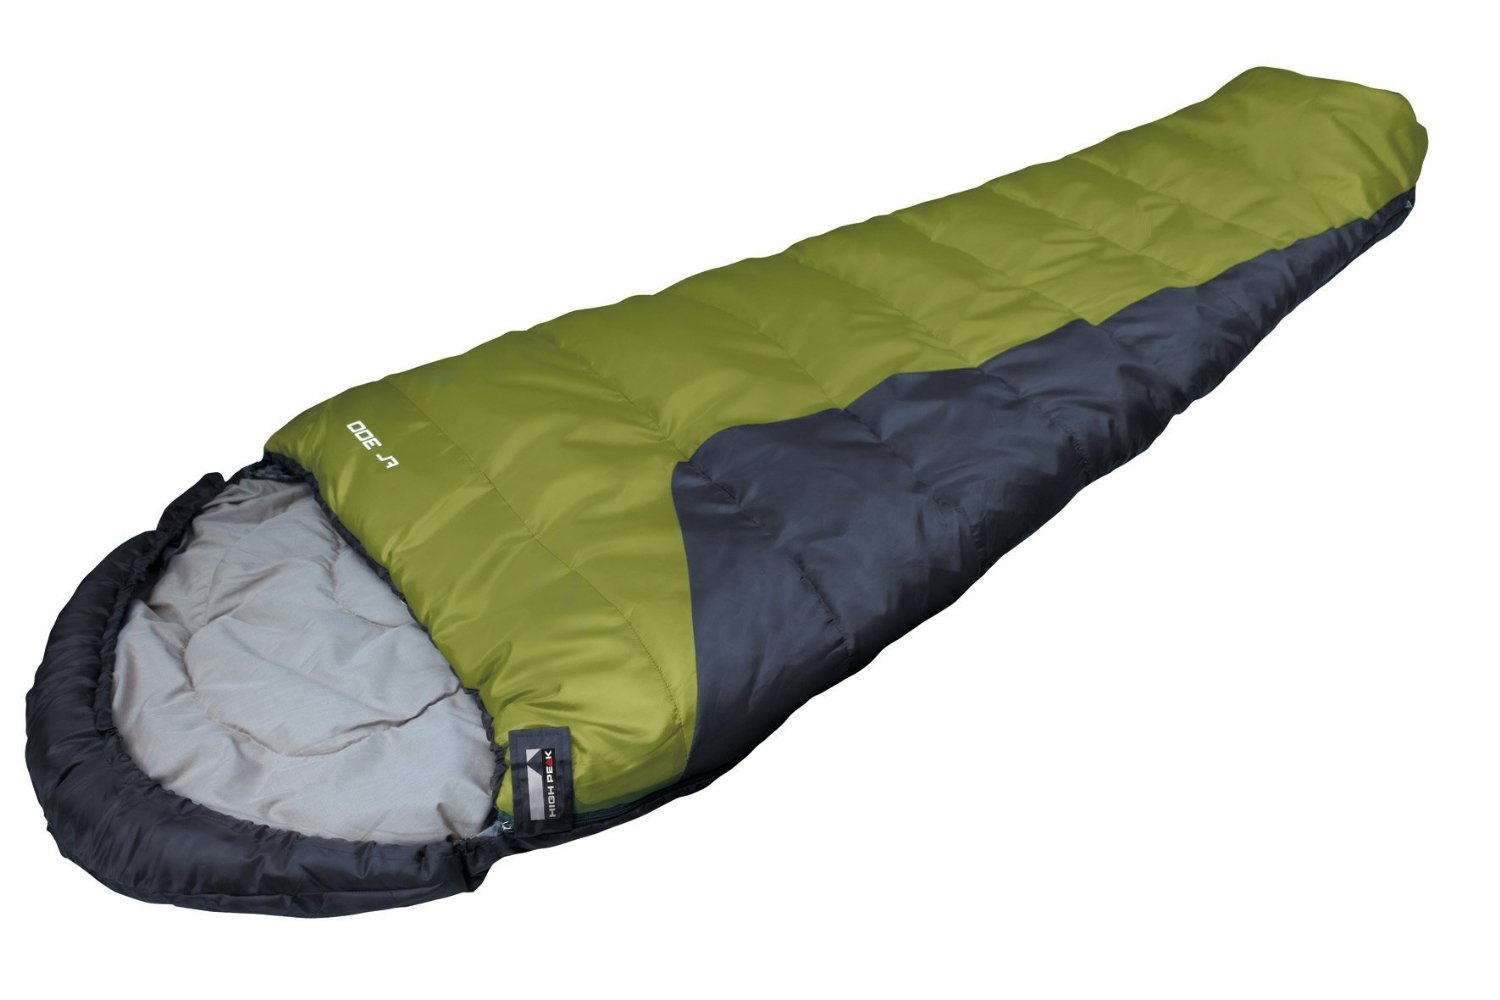 newest 98933 7edda High Peak TR 300 Schlafsack | Schlafsack Test